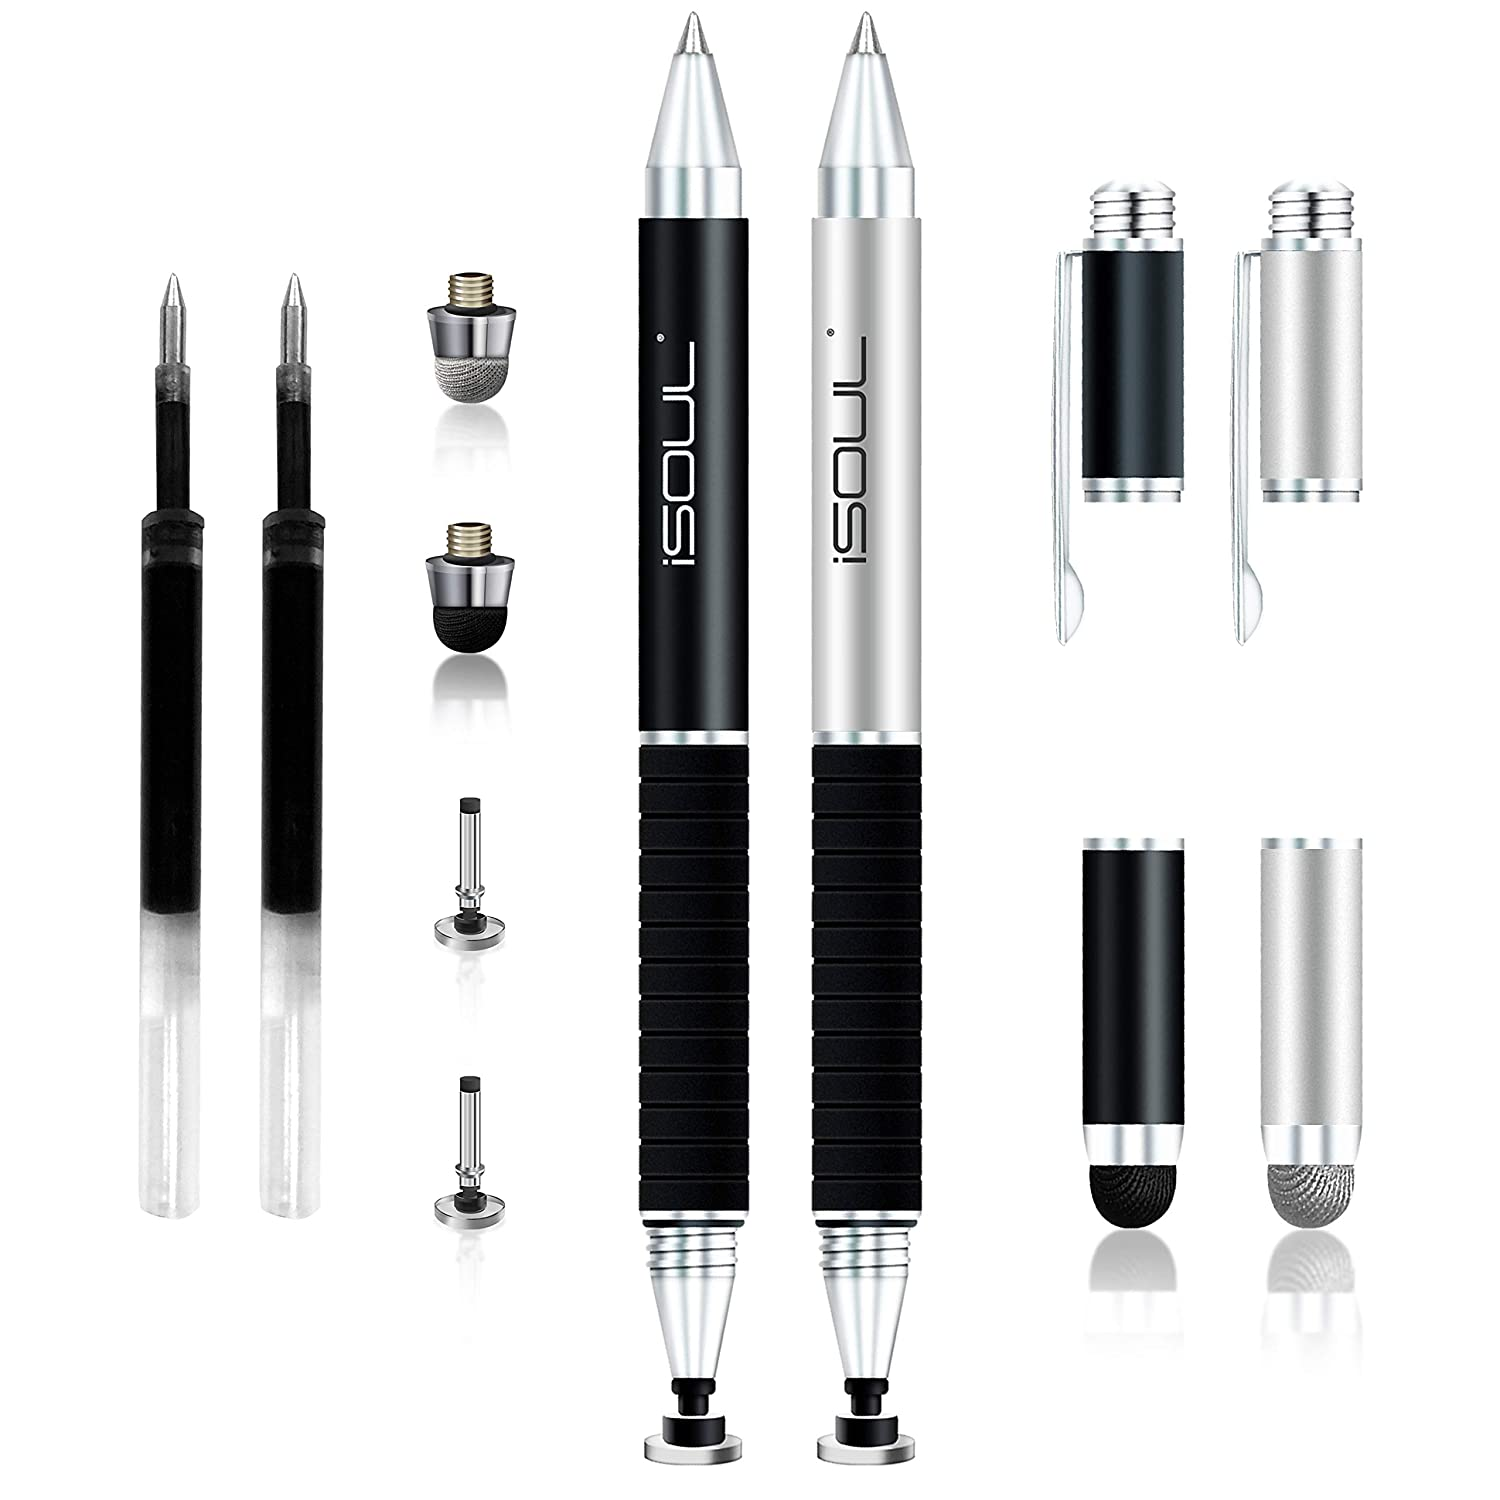 iPad Disc Stylus Pen Galaxy Oneplus iPhone Gel Pen 3 in 1 Universal Capacitive Stylus Pen with 2Pcs Replacement Tips for Smartphones Tablet Stylus ISOUL Fine Tip Stylus Google Pixel